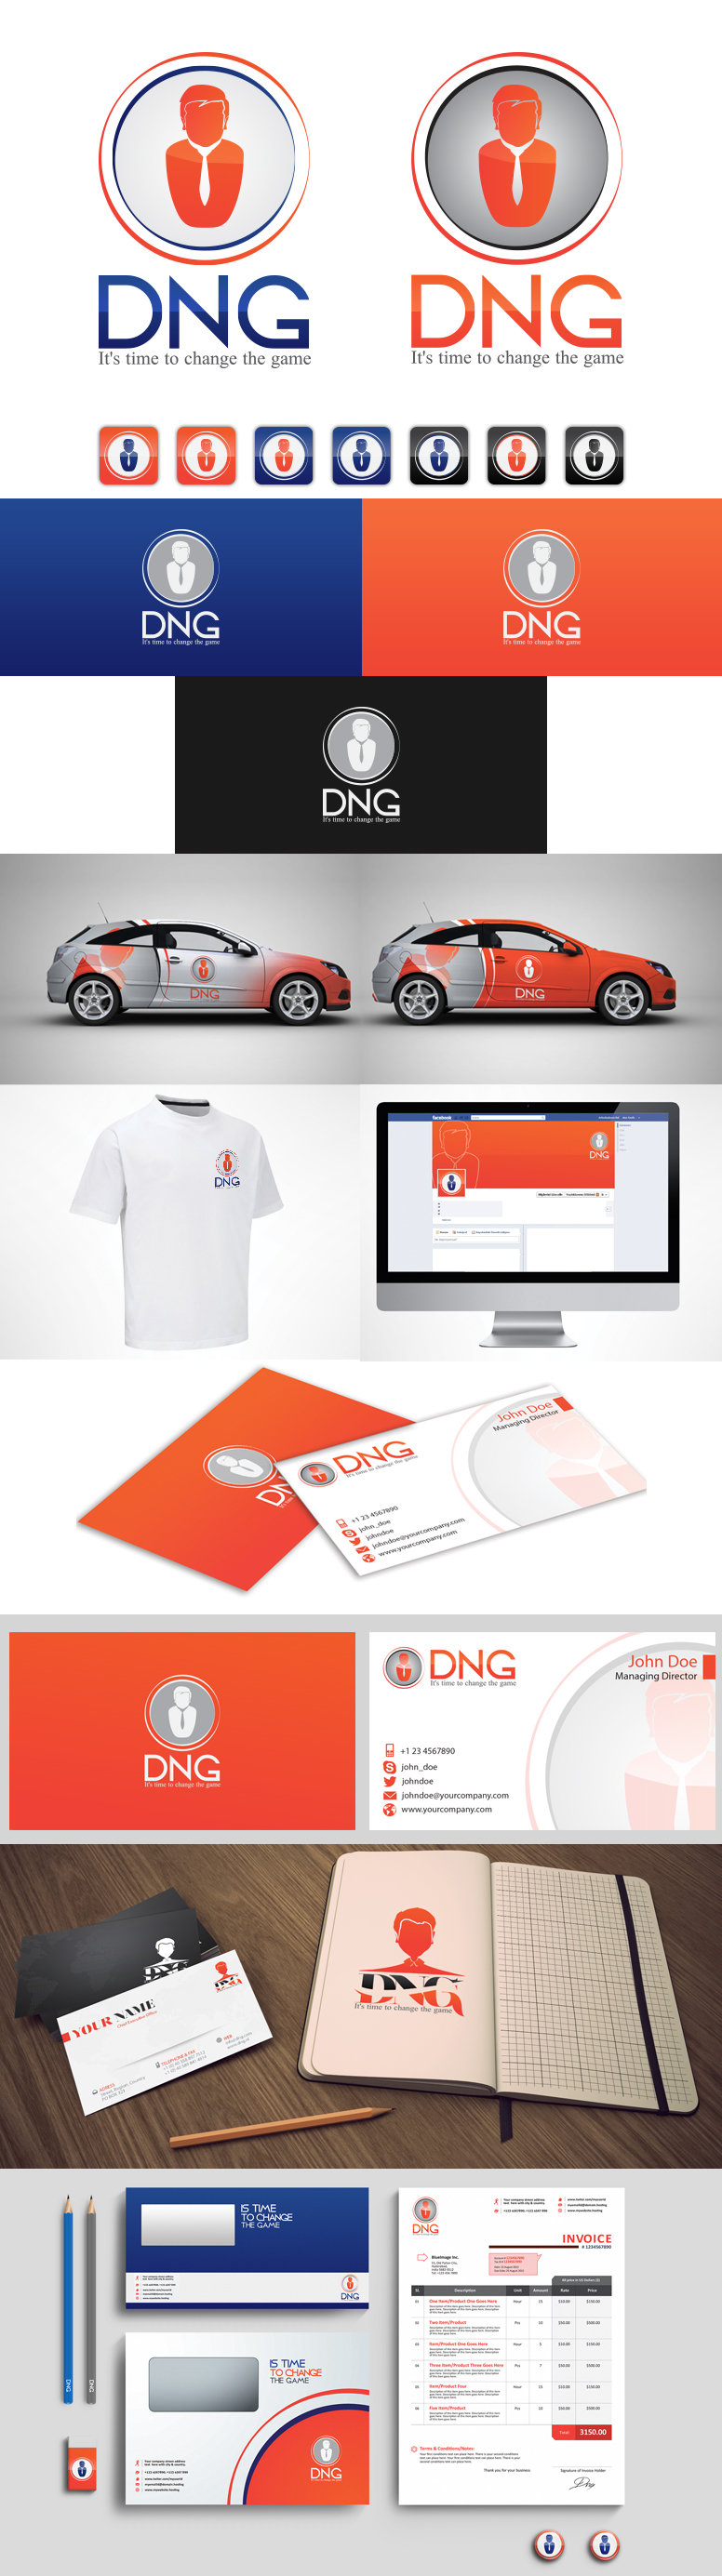 DNG Corporate Identity